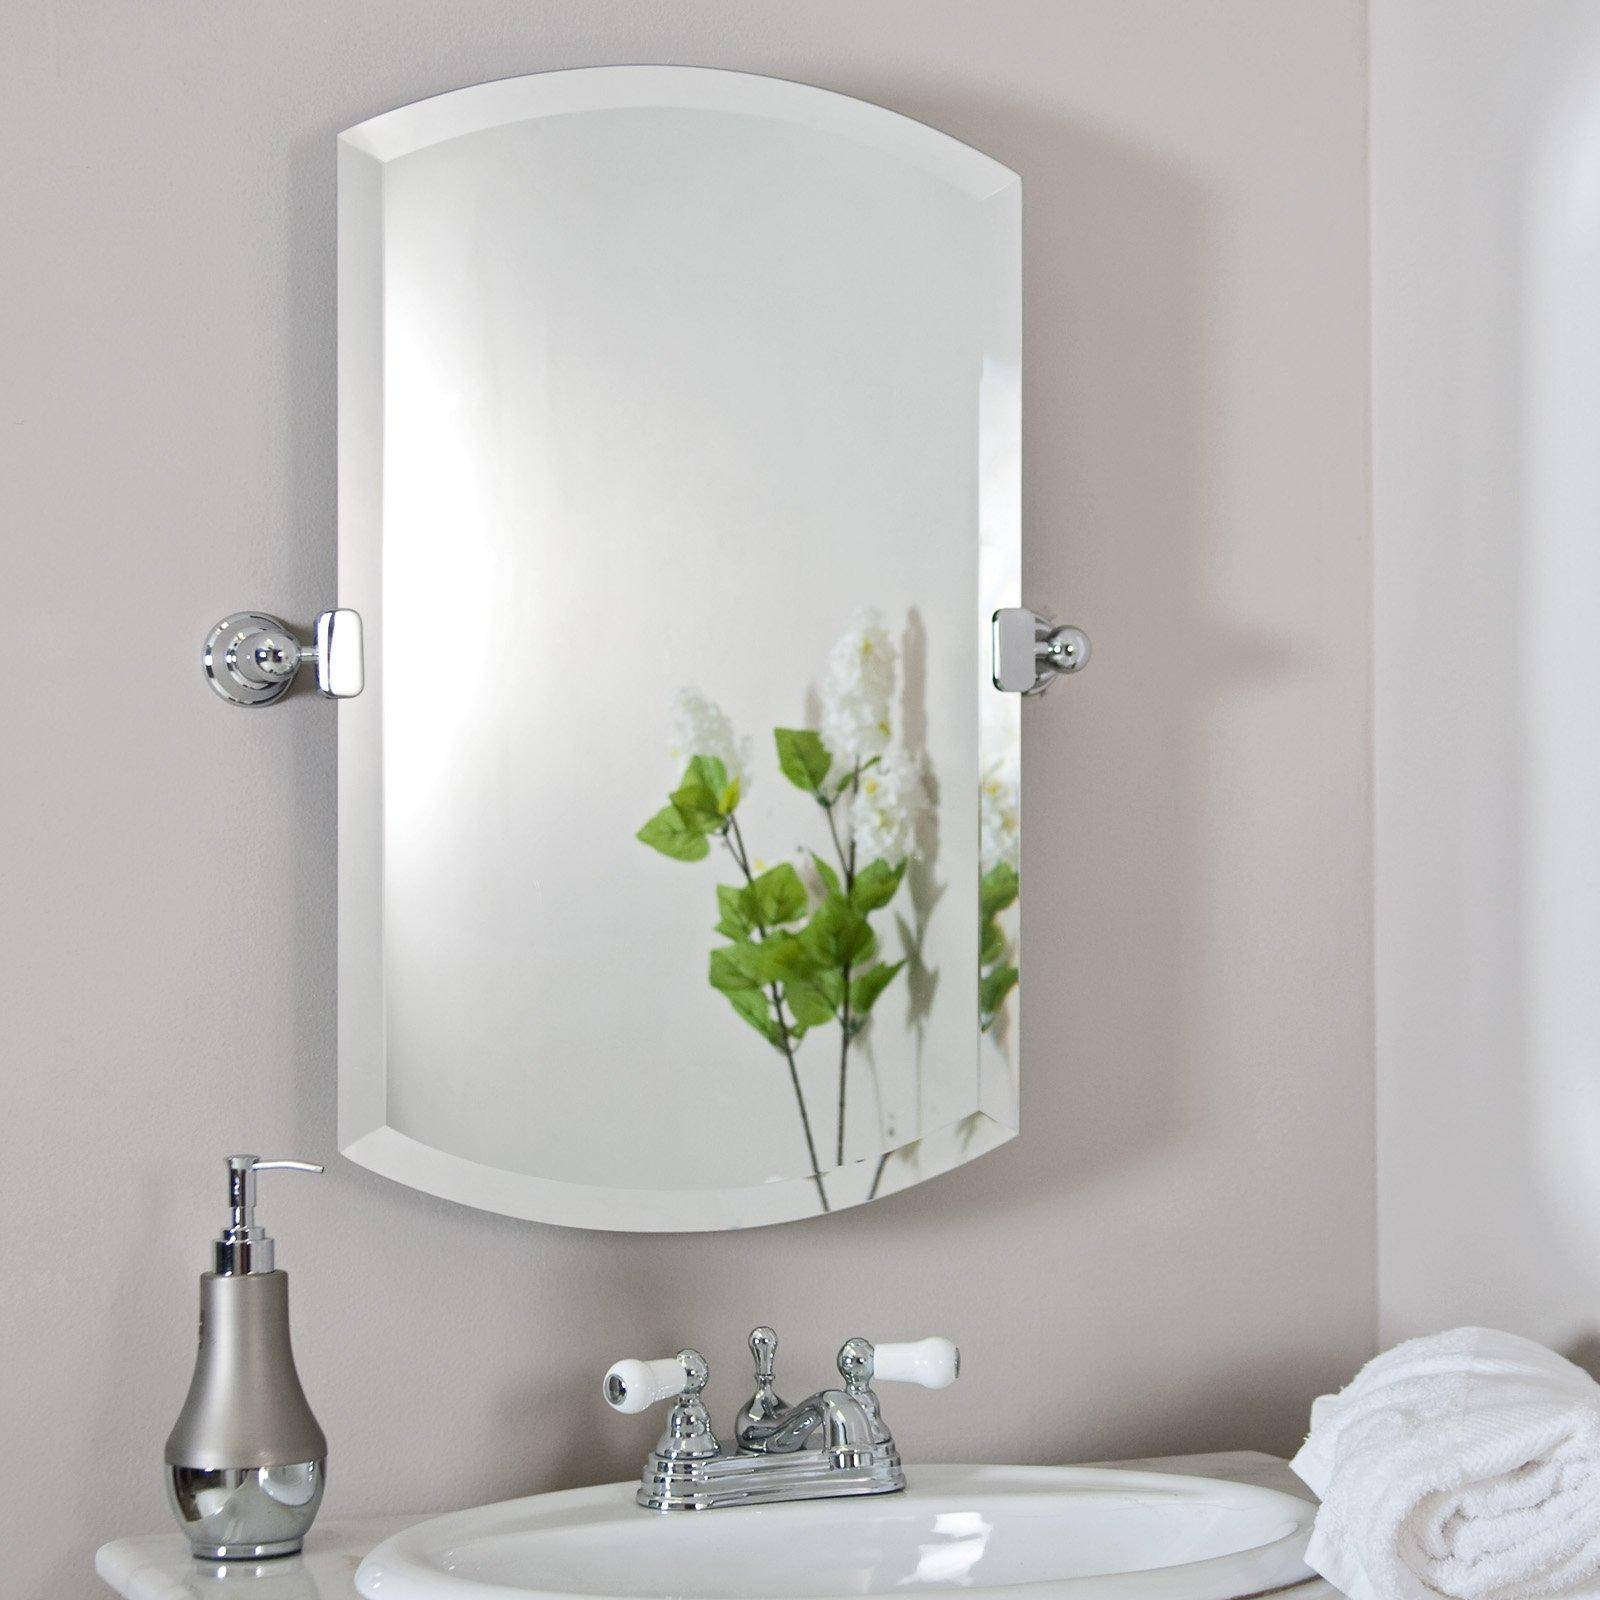 Awesome Small Bathroom Mirrors Small Bathroom Mirrors. Spacious in Small Free Standing Mirrors (Image 2 of 25)